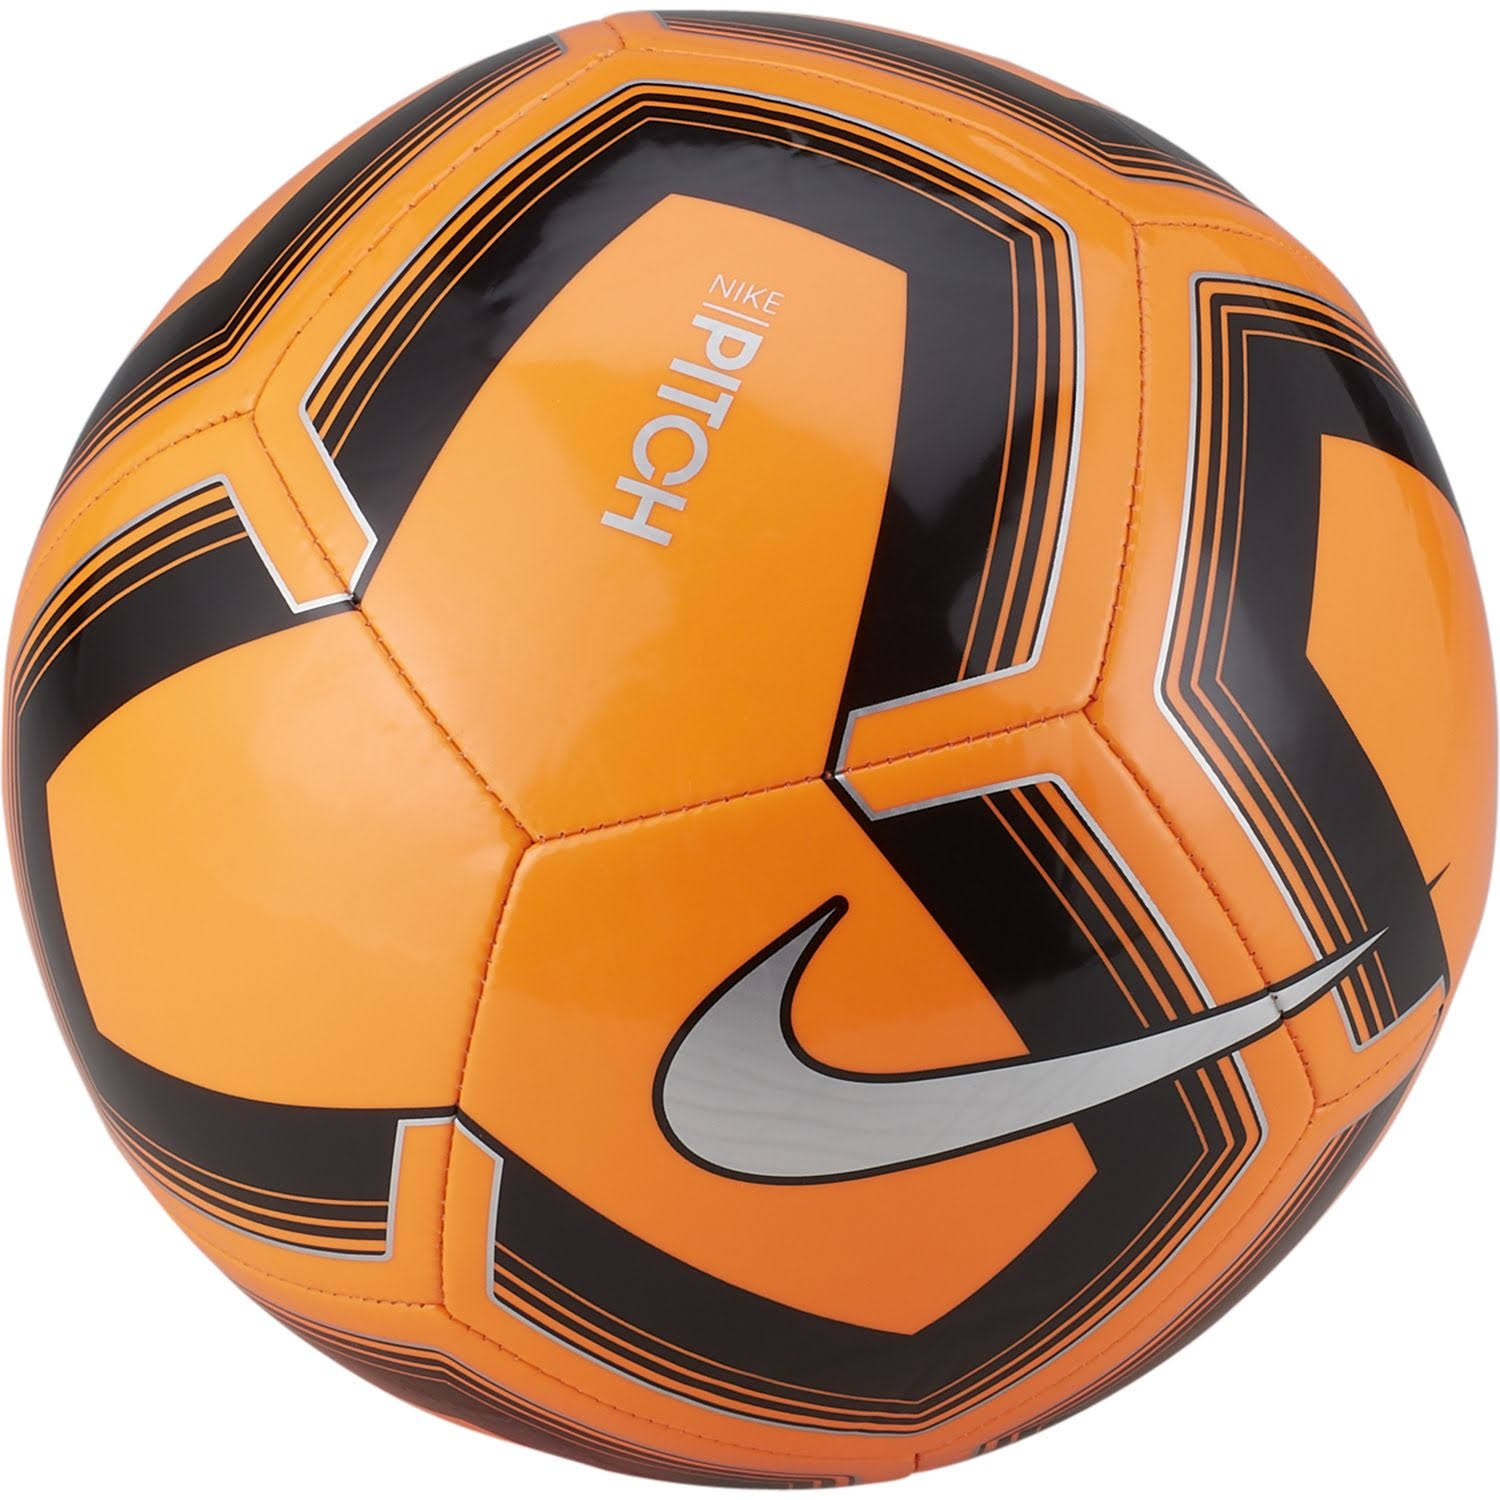 Nike Pitch Training Soccer Ball (Orange, 3)